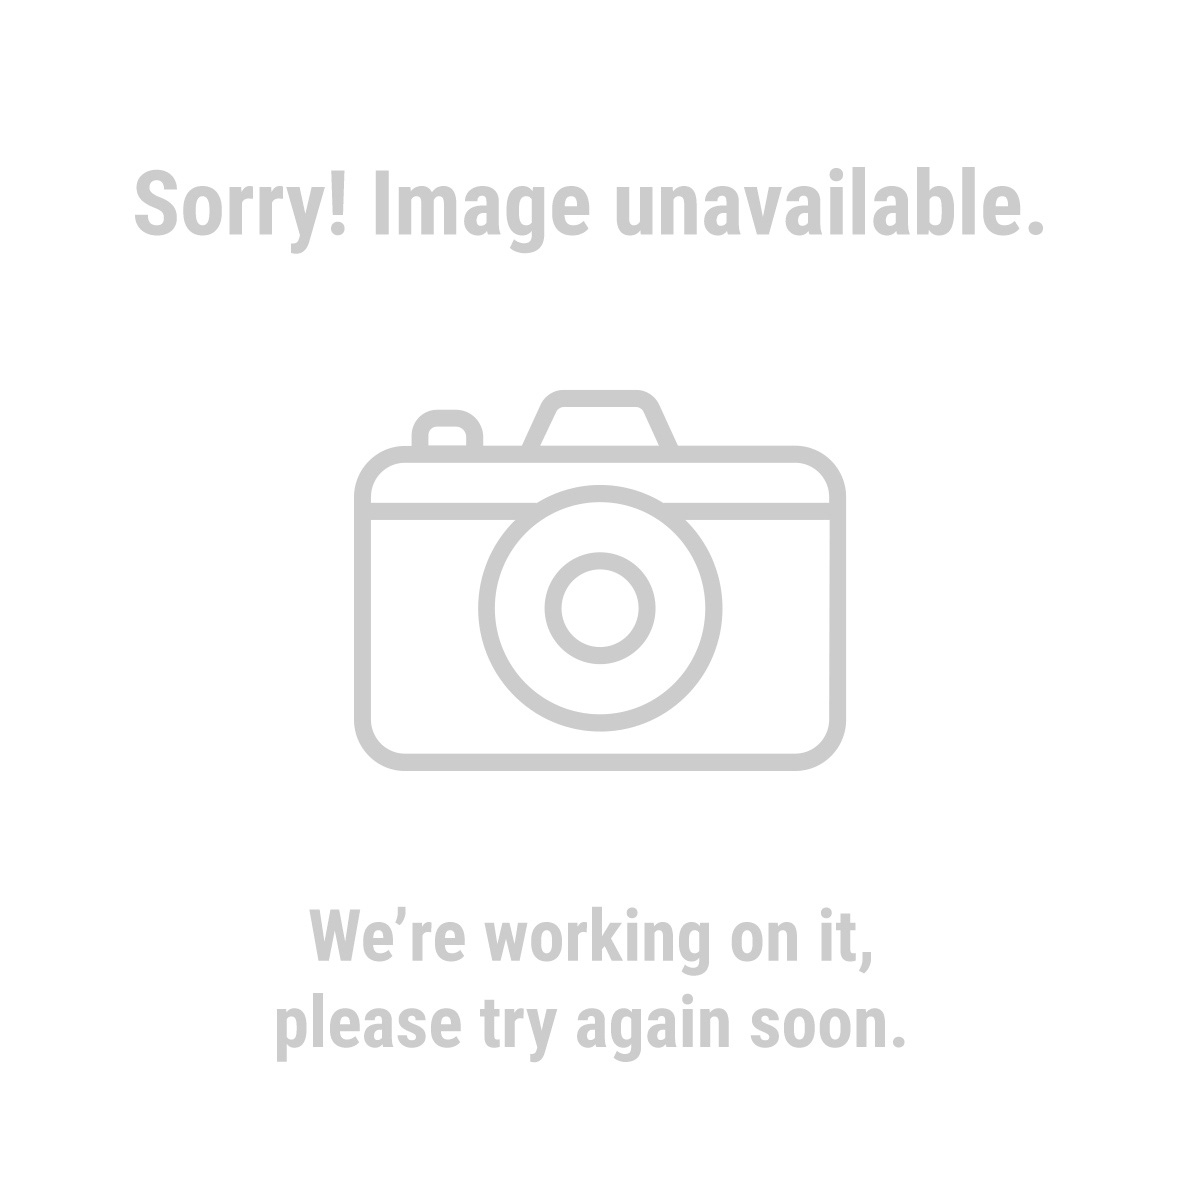 Hard Cap Gel Knee Pads